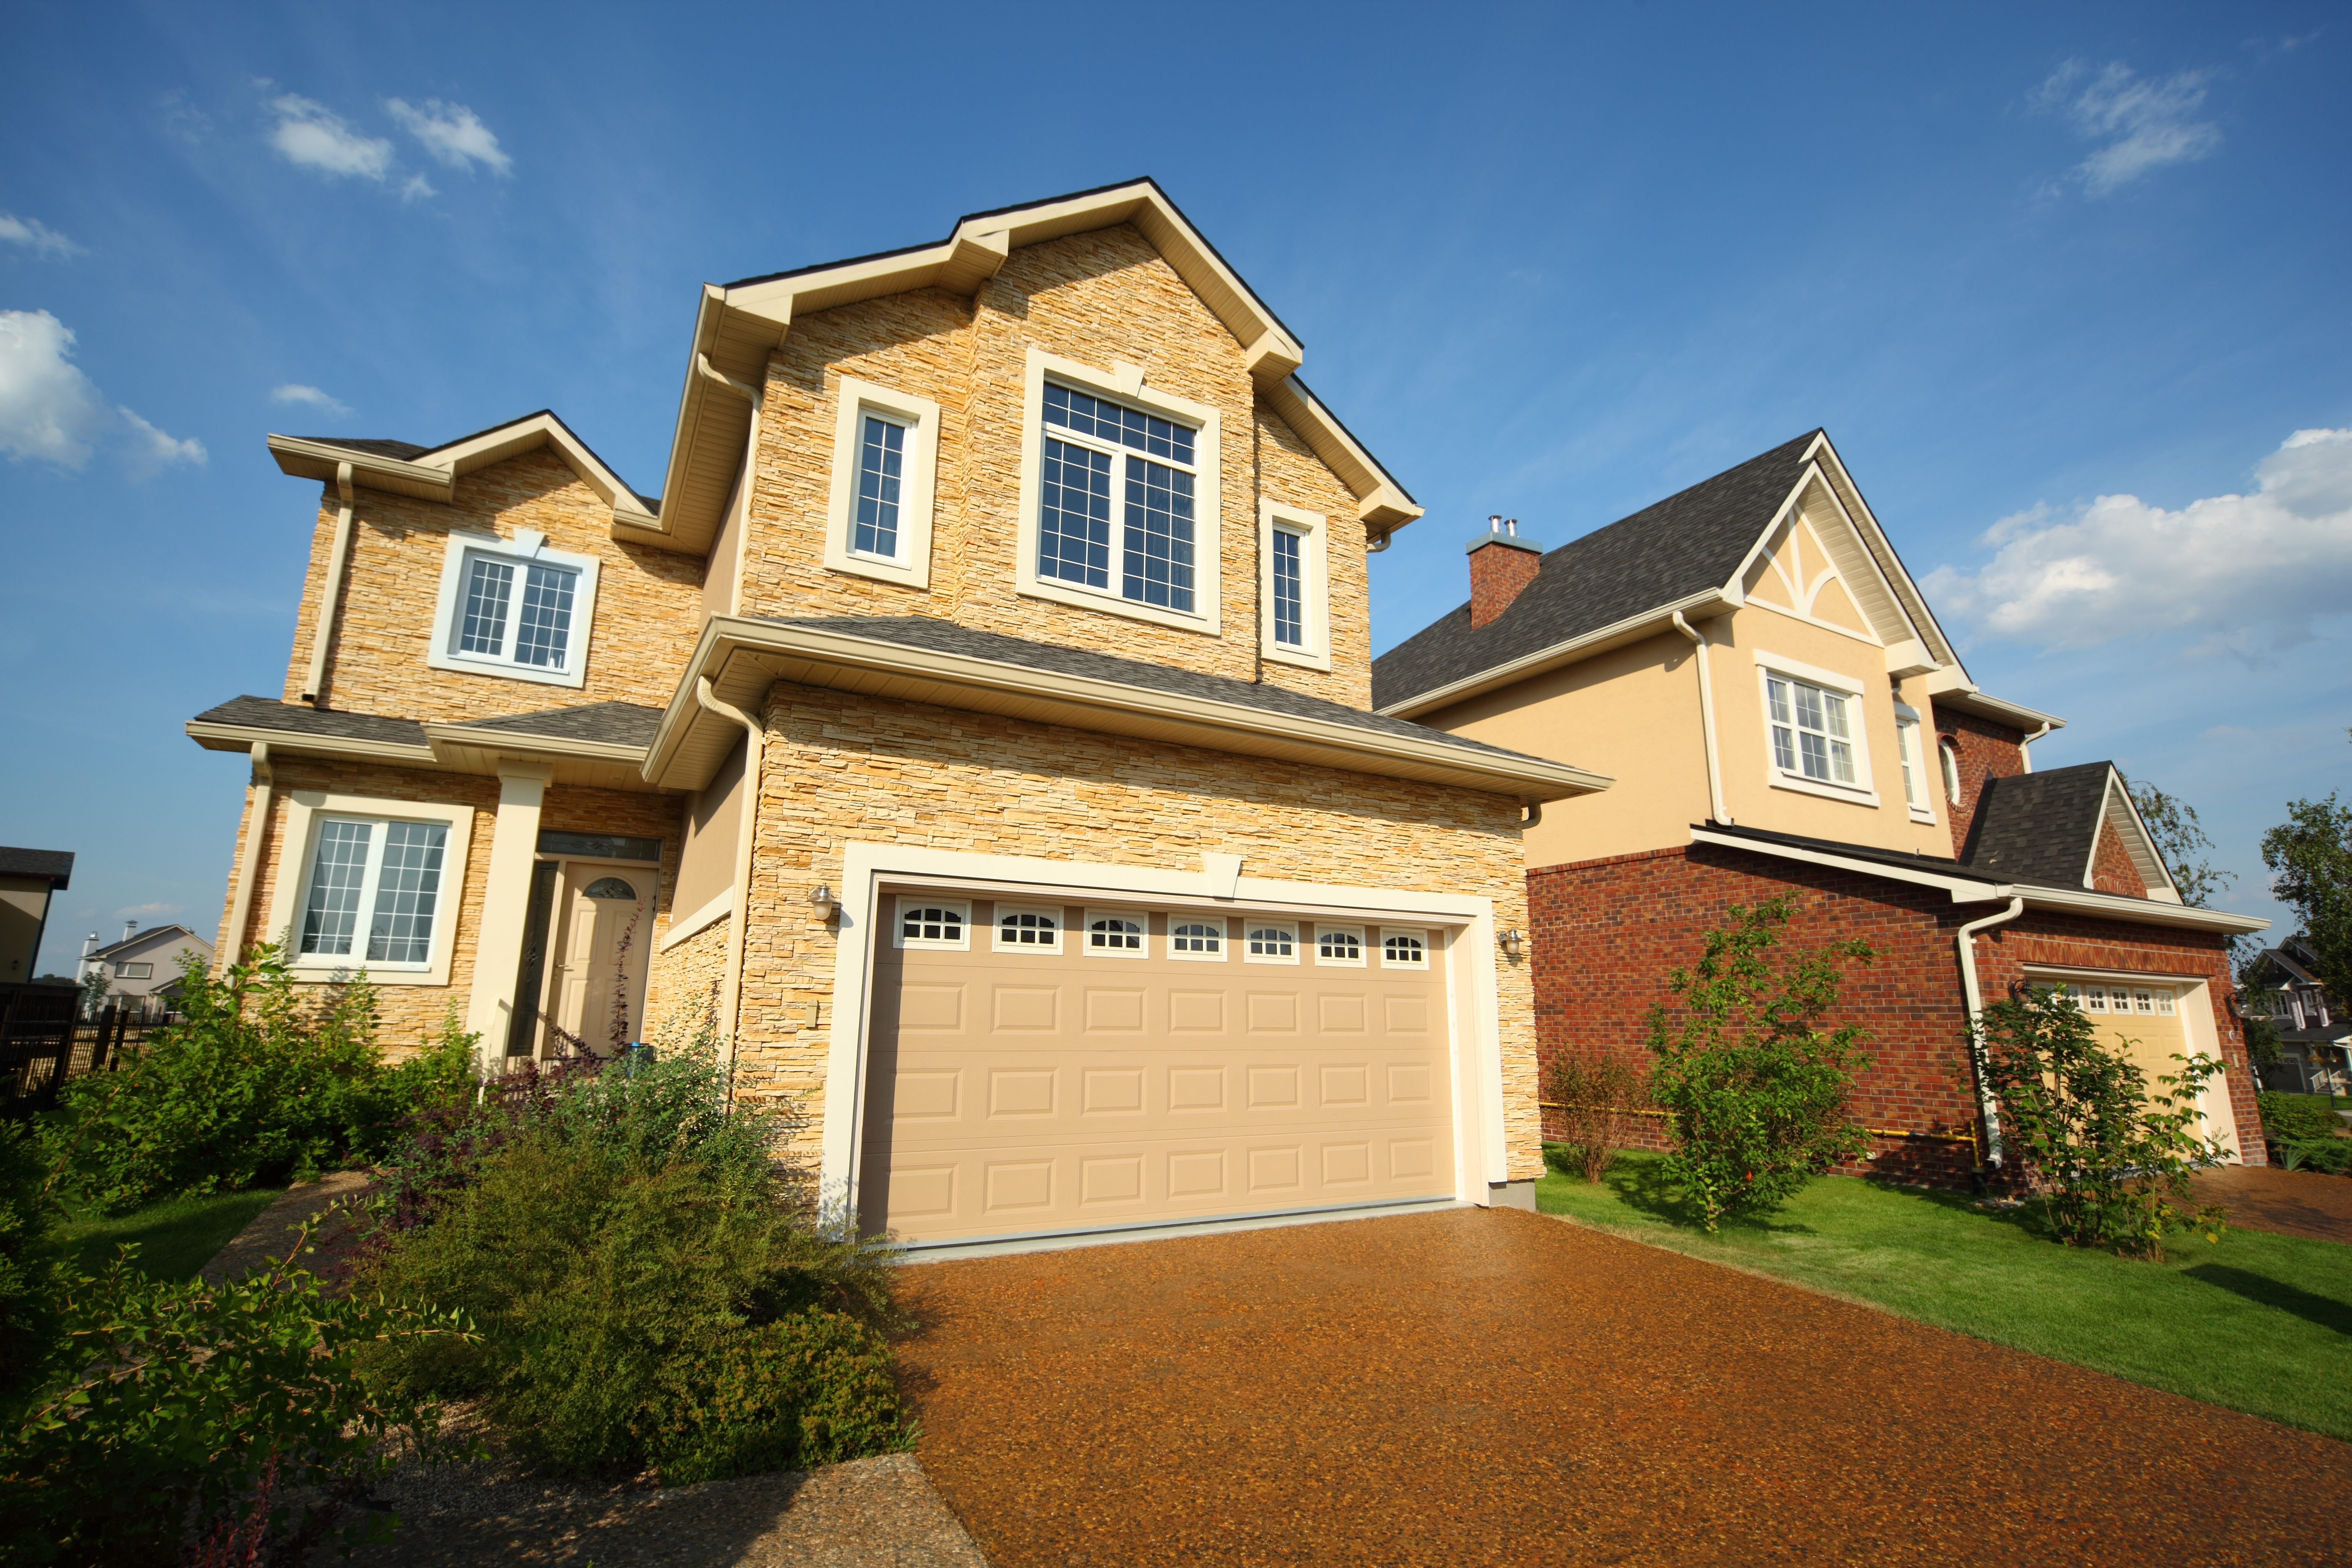 Garage Door Services- Keep Safe And Secure